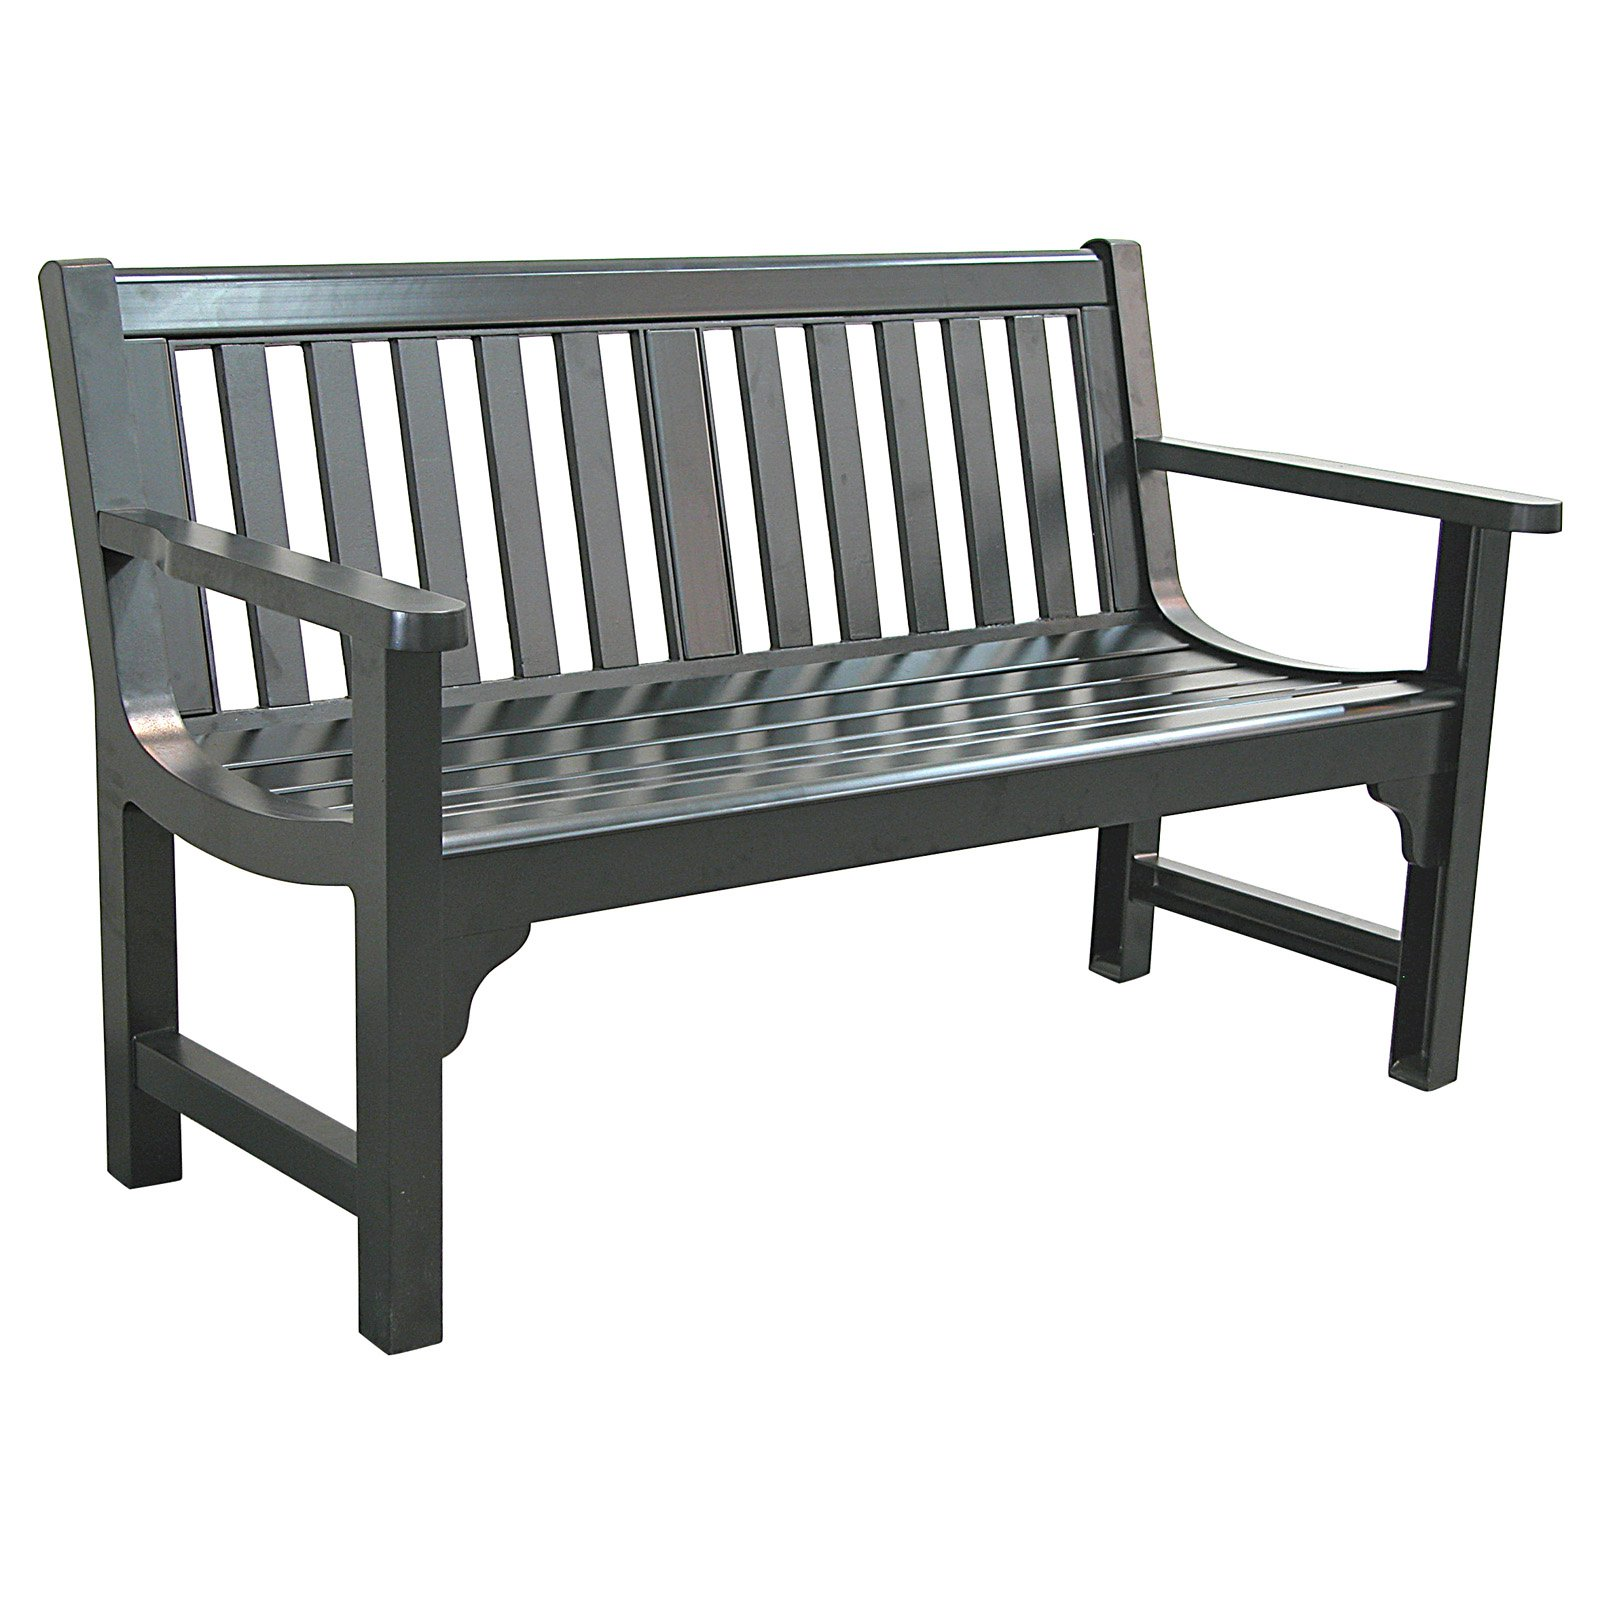 our favorite innova charleston 4 ft cast aluminum park bench outdoor